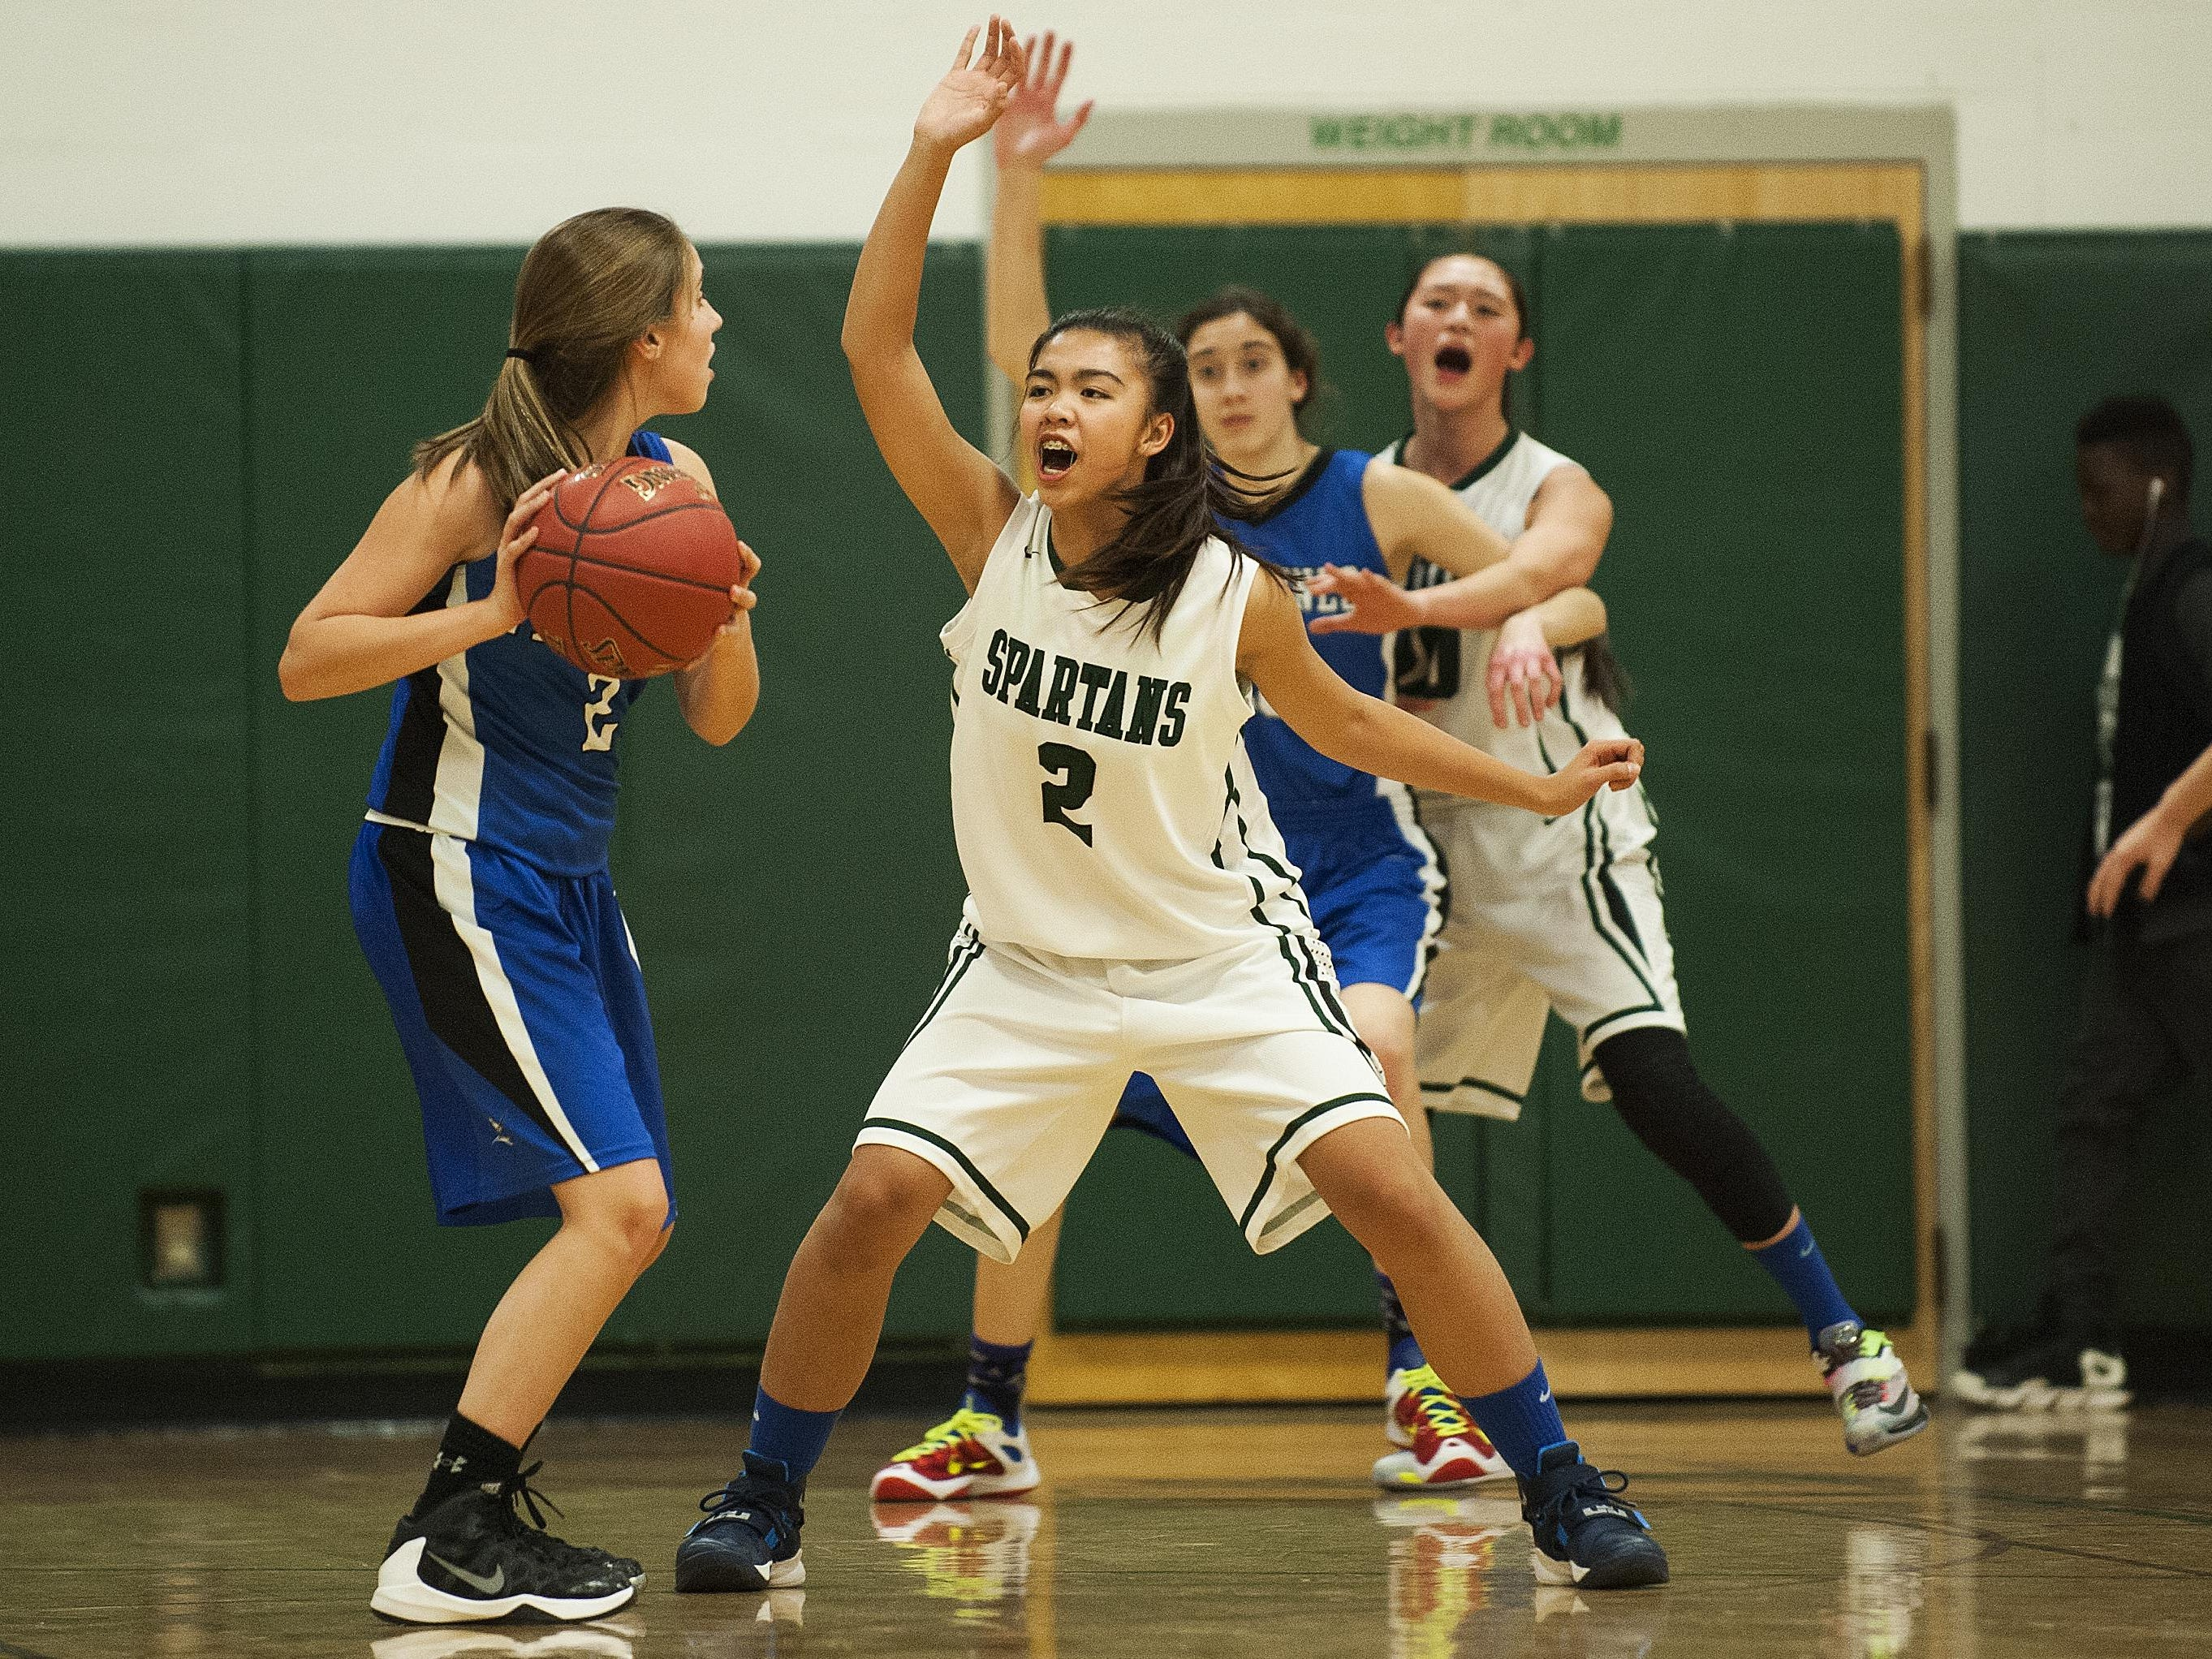 Winooski's Marie Ly (2) guards Vergennes' Shay Pouliot (2) during the girls basketball game between Vergennes and Winooski at Winooski High School on Wednesday night.